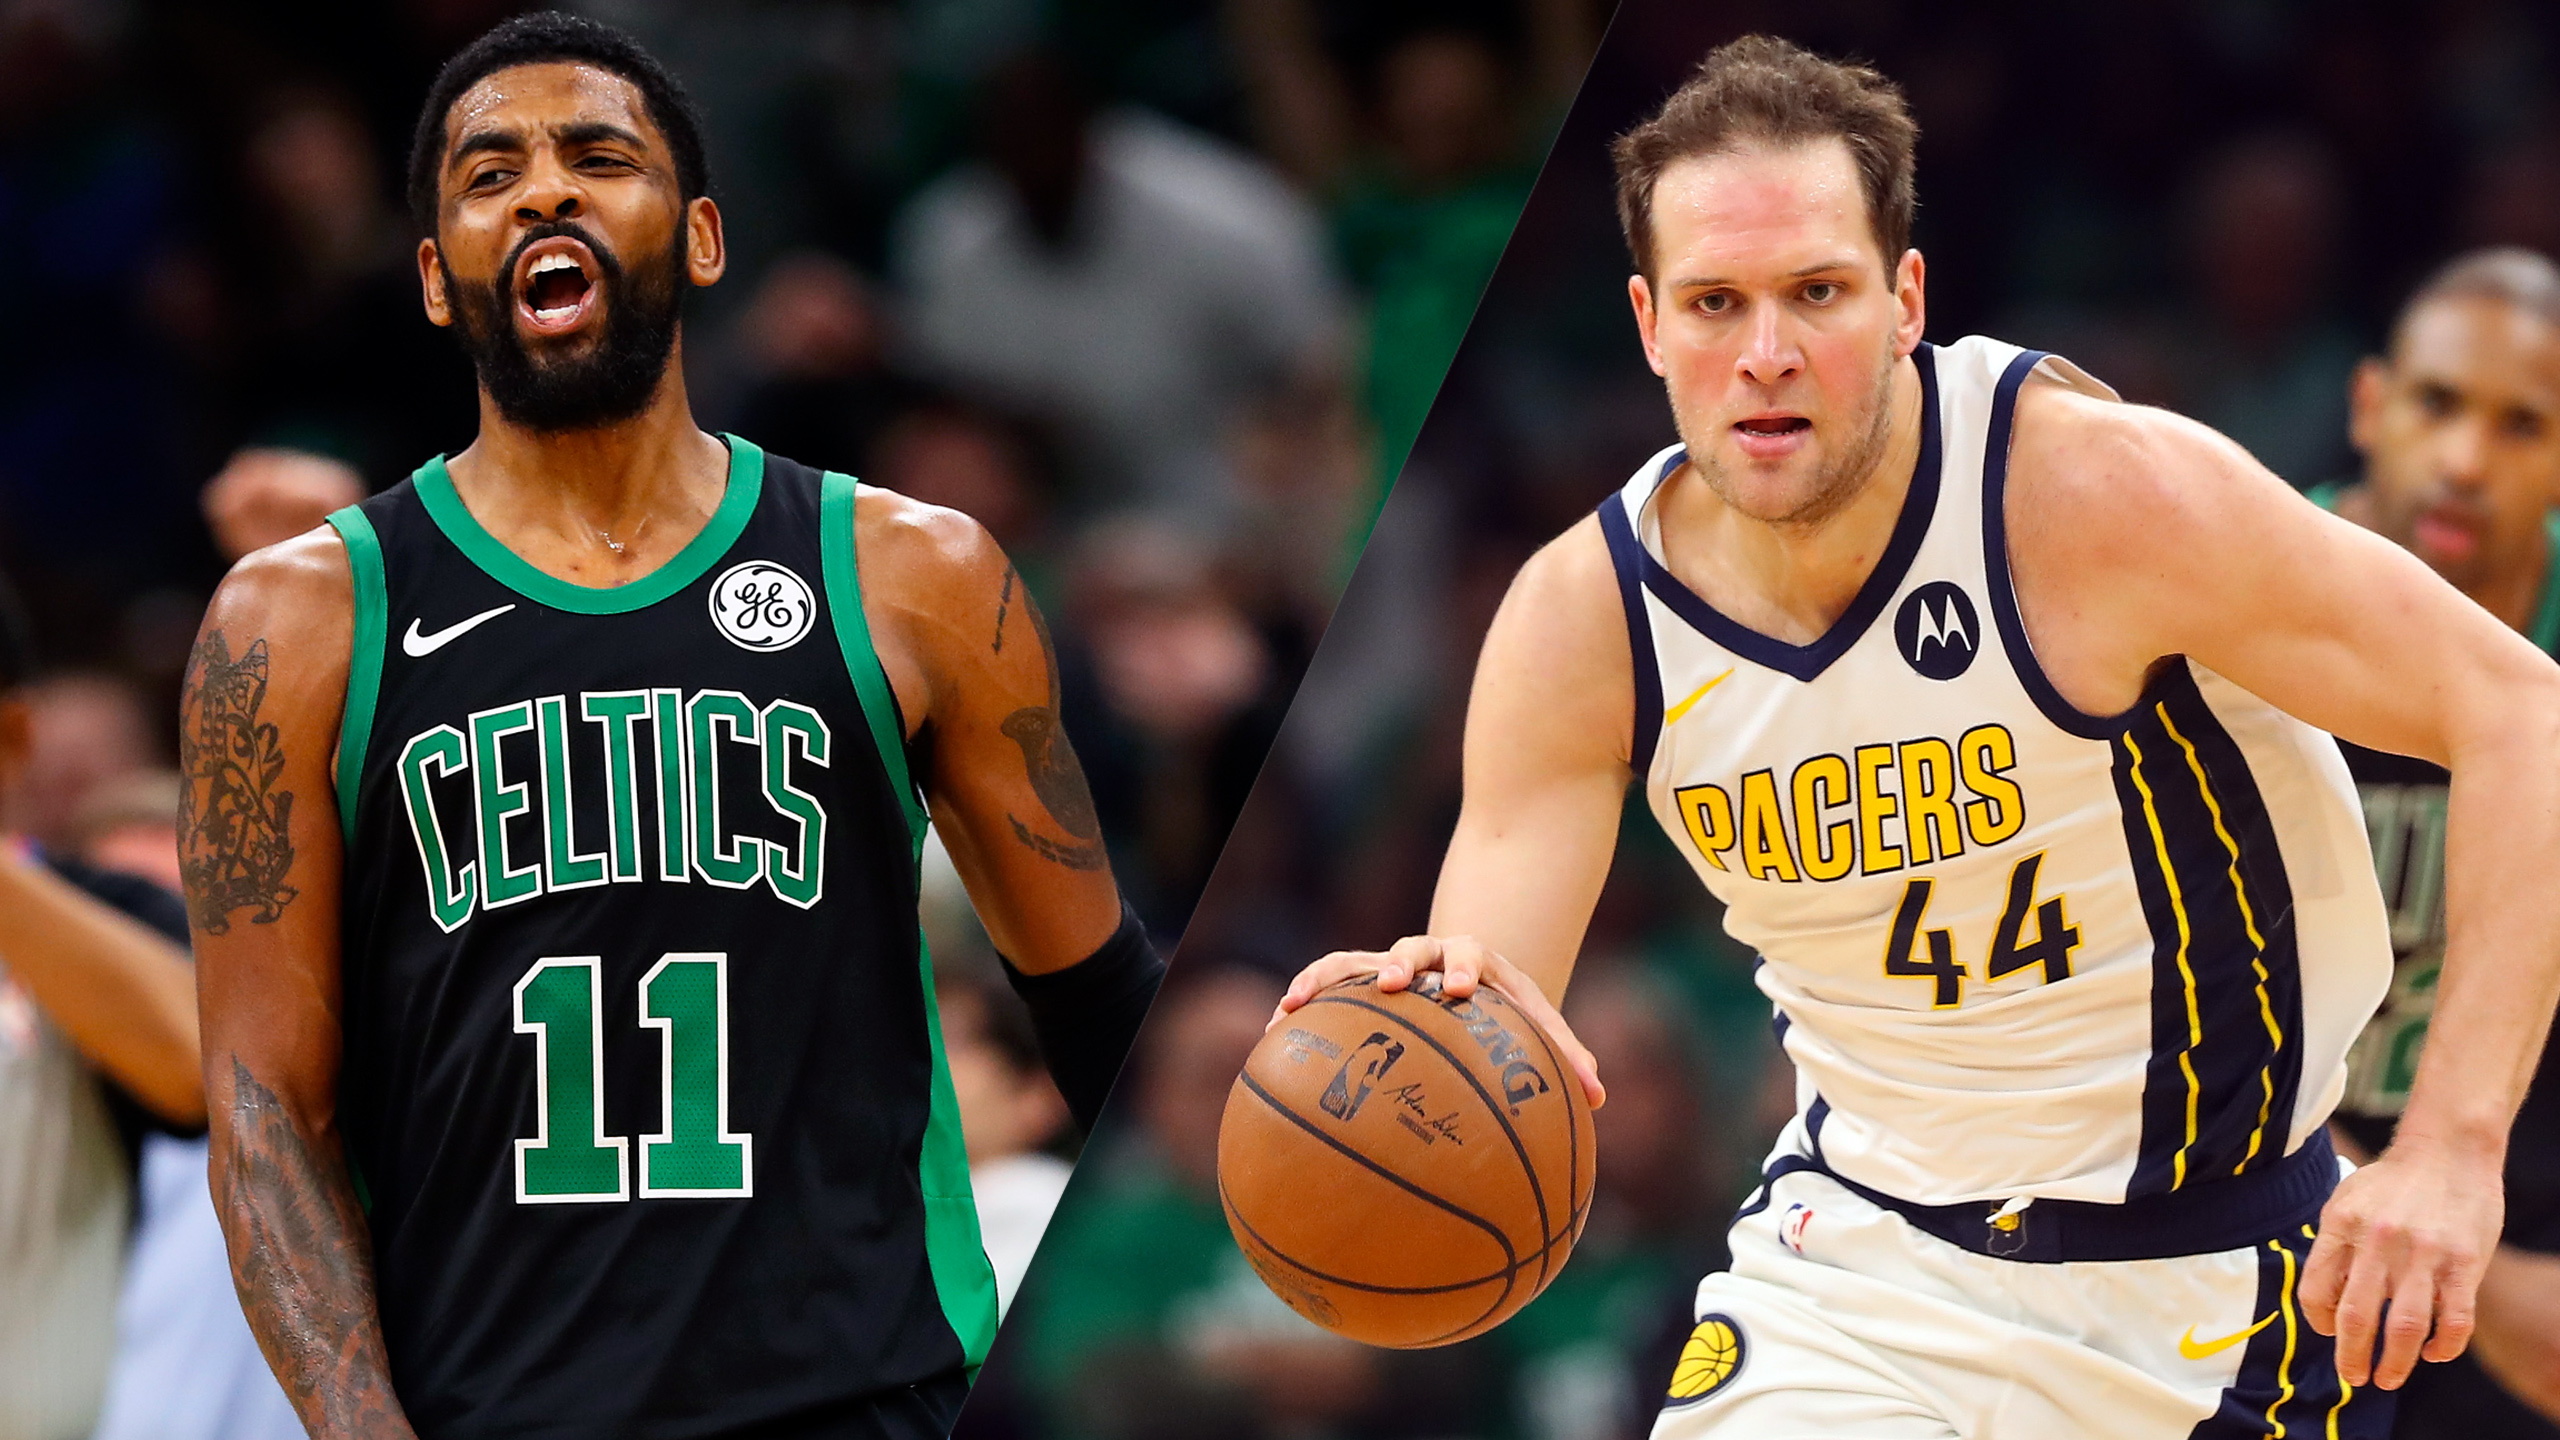 Boston Celtics vs. Indiana Pacers (First Round, Game 3)